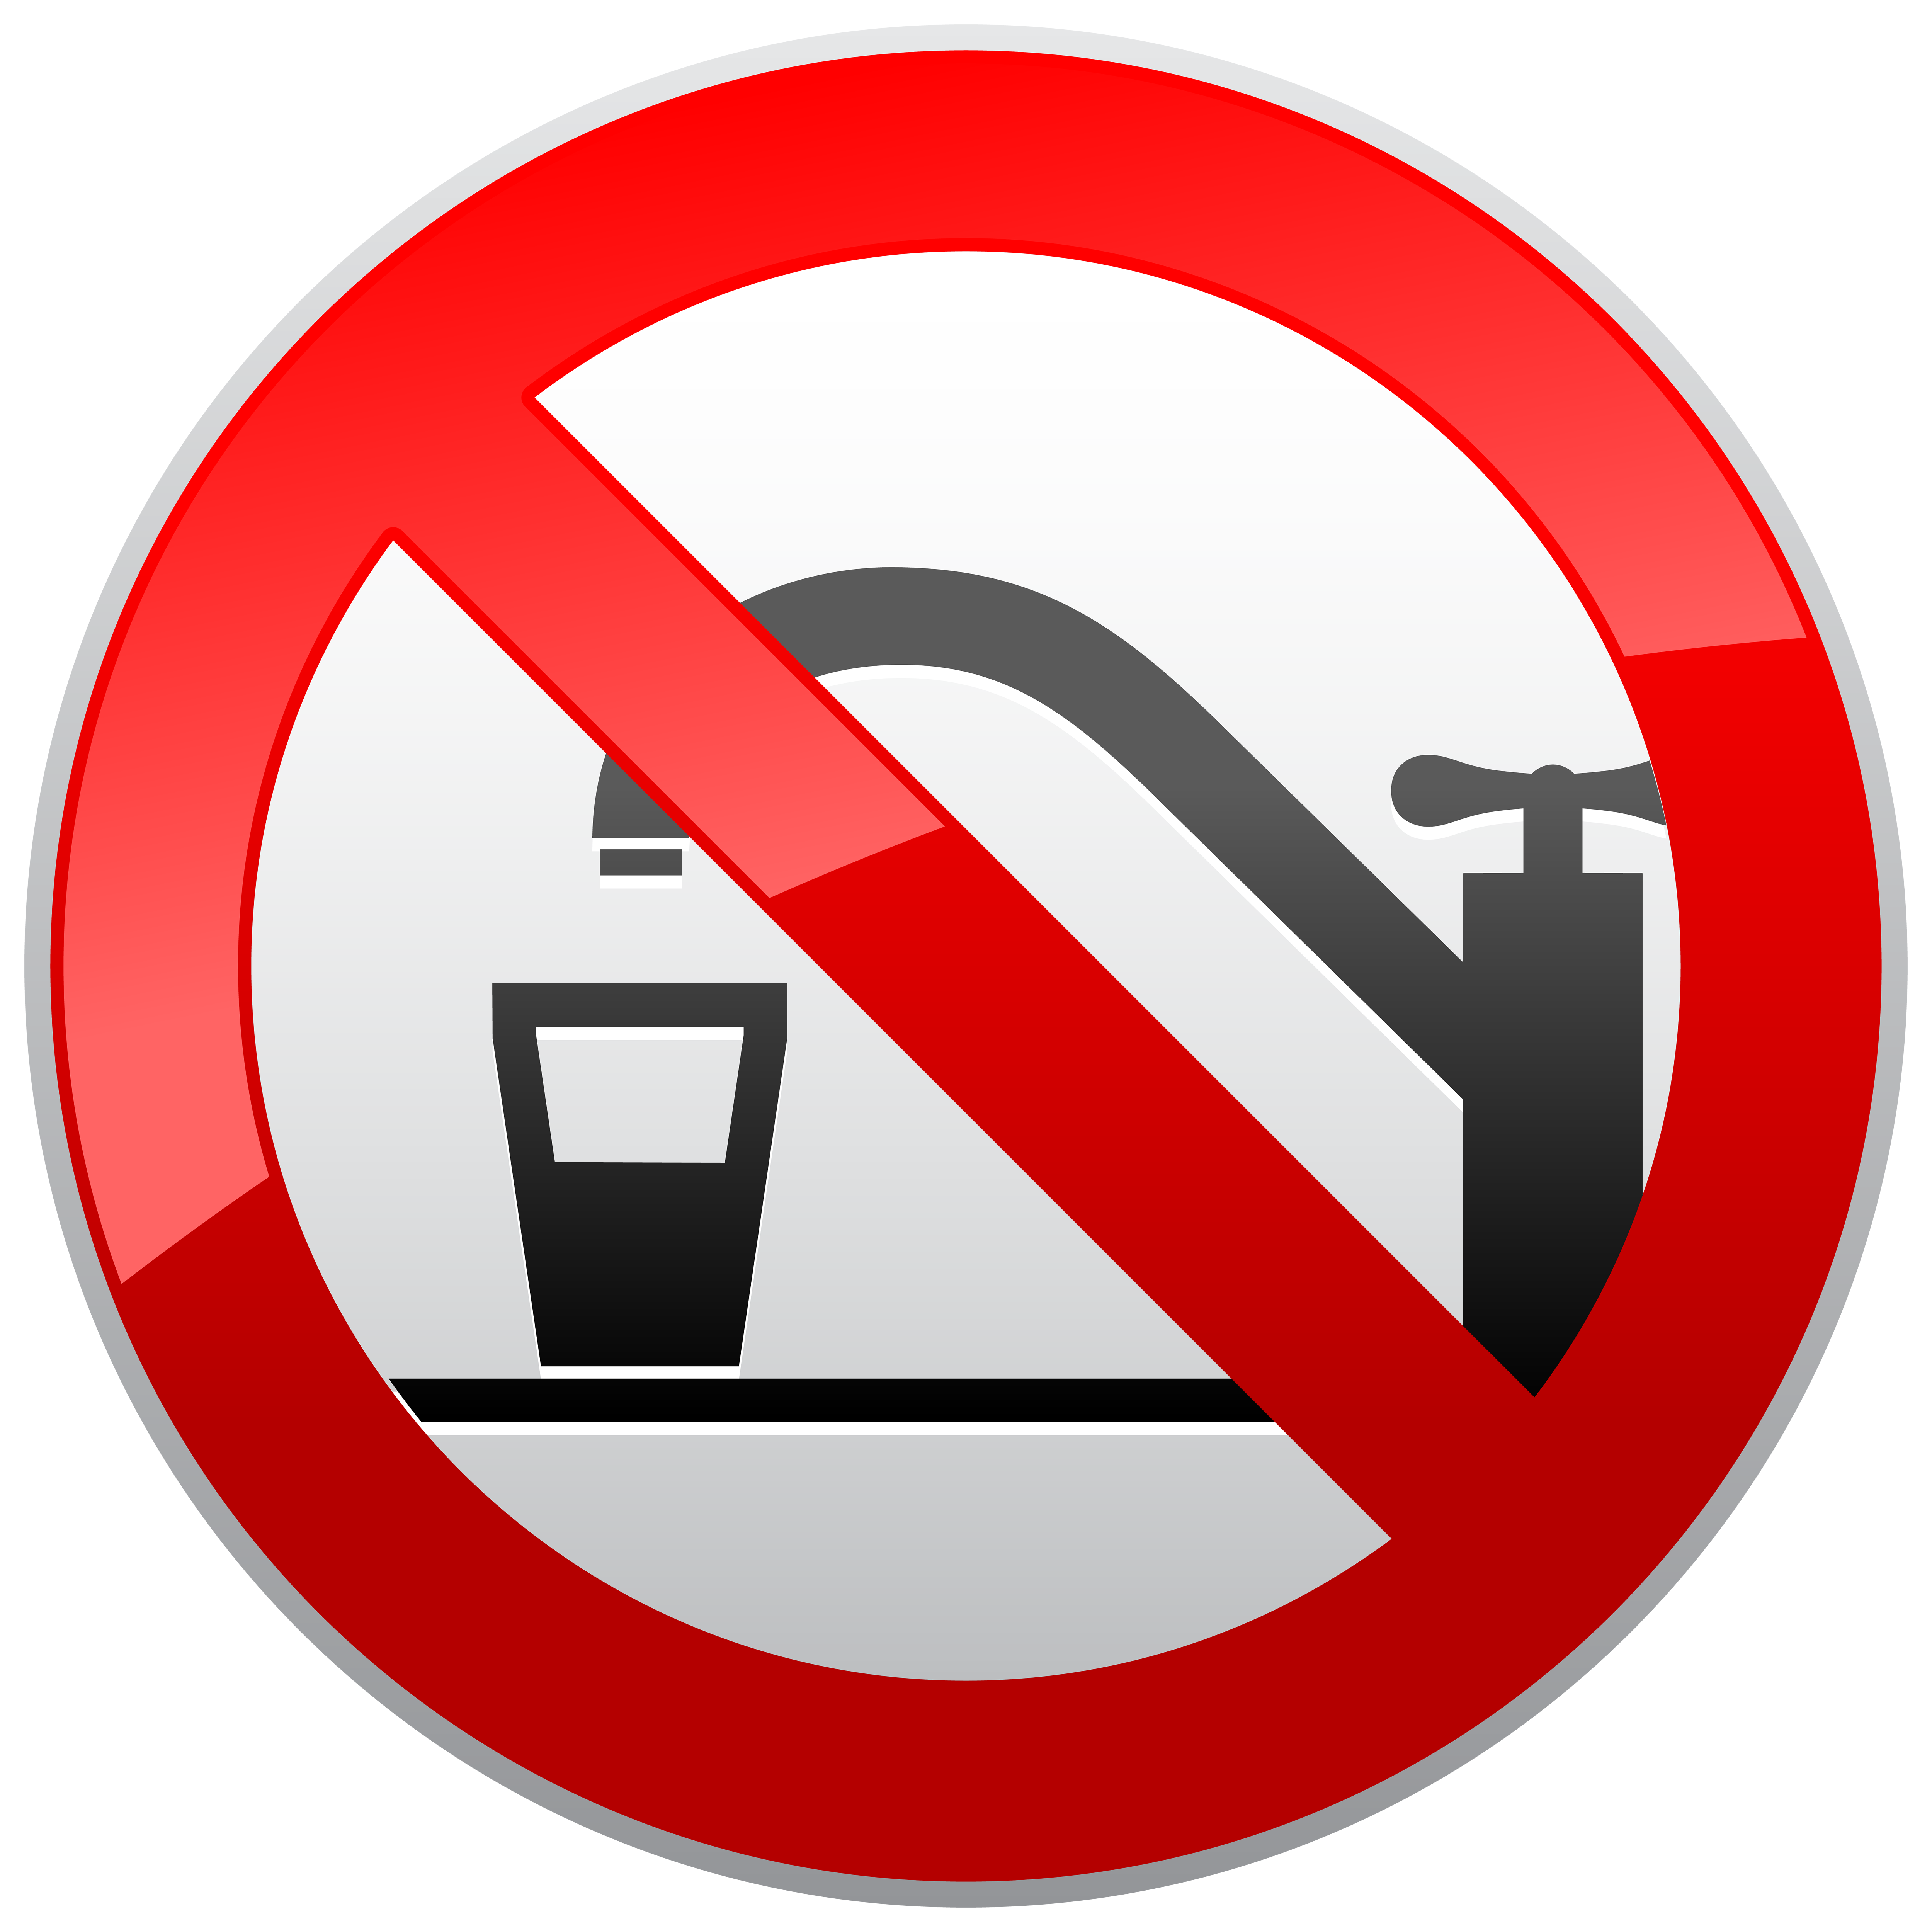 No water clipart.